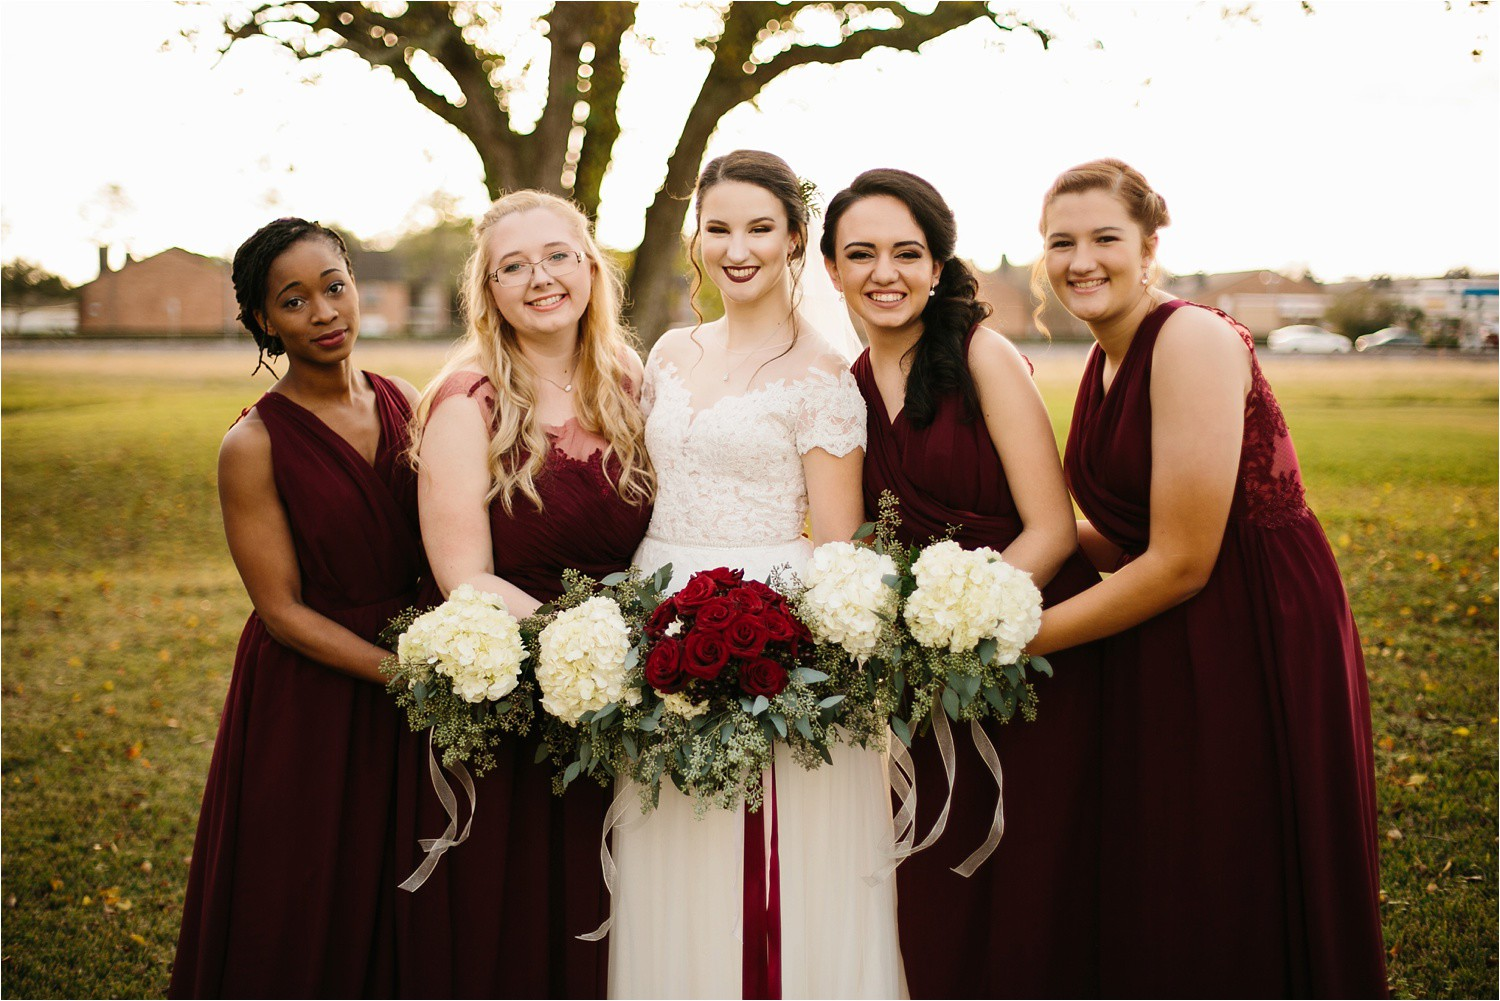 Alaina + Josh __ a wintertime wedding in Houston, TX with Christmas accents and a BHLDN dress by North Texas Wedding Photographer Rachel Meagan Photography _ 14